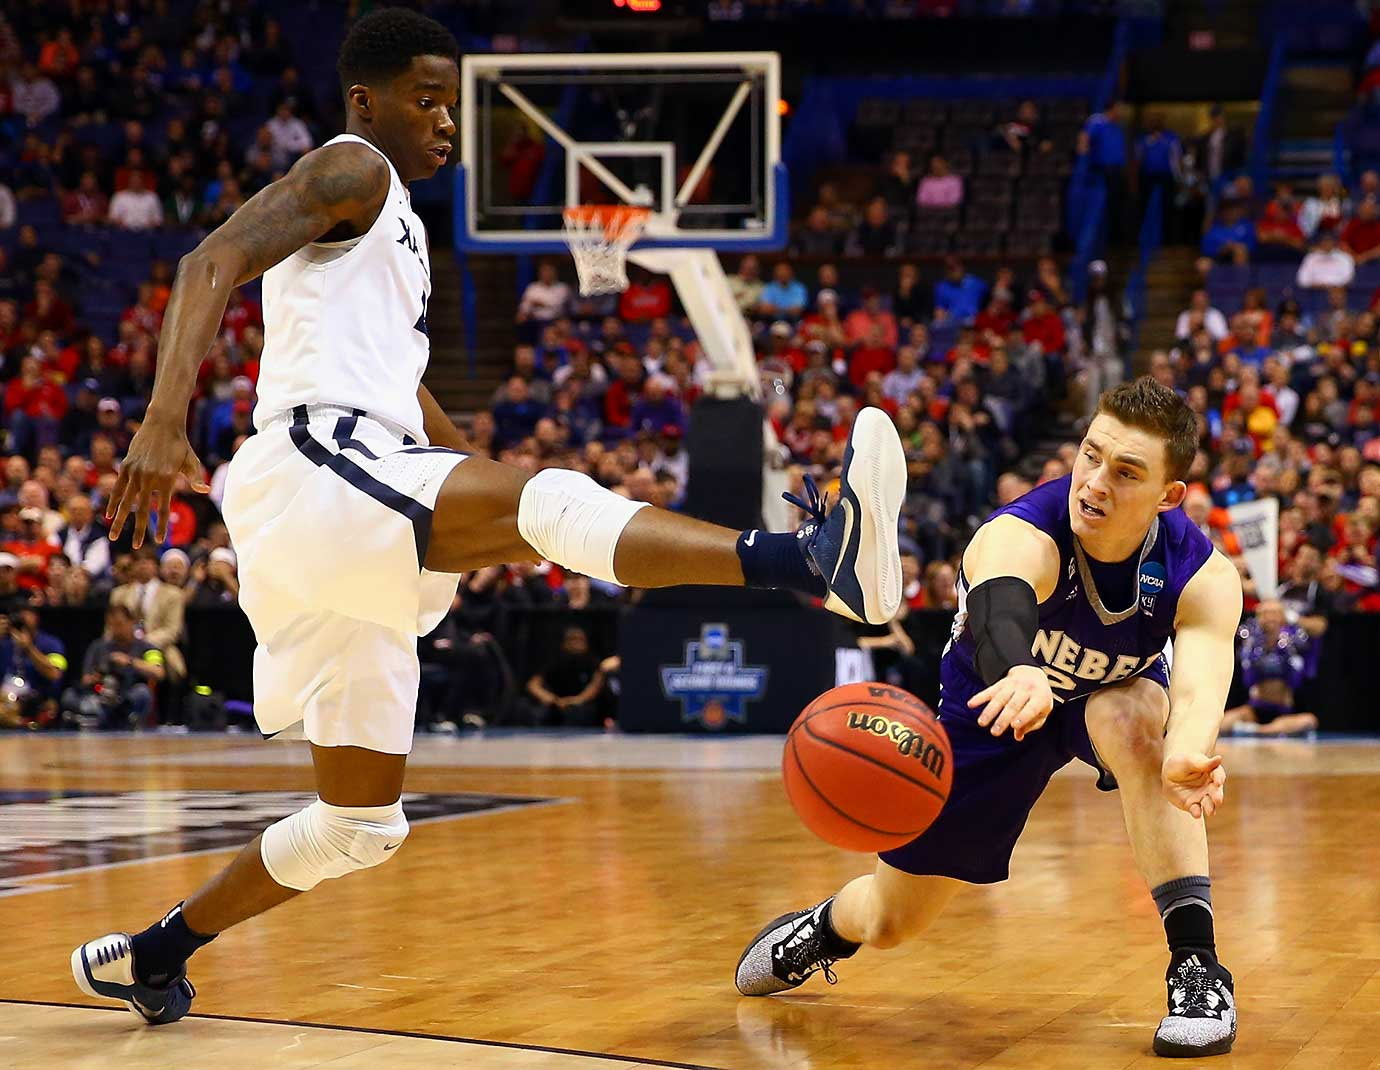 Edmond Sumner of the Xavier Musketeers attempts to block a pass by McKay Cannon of Weber State.